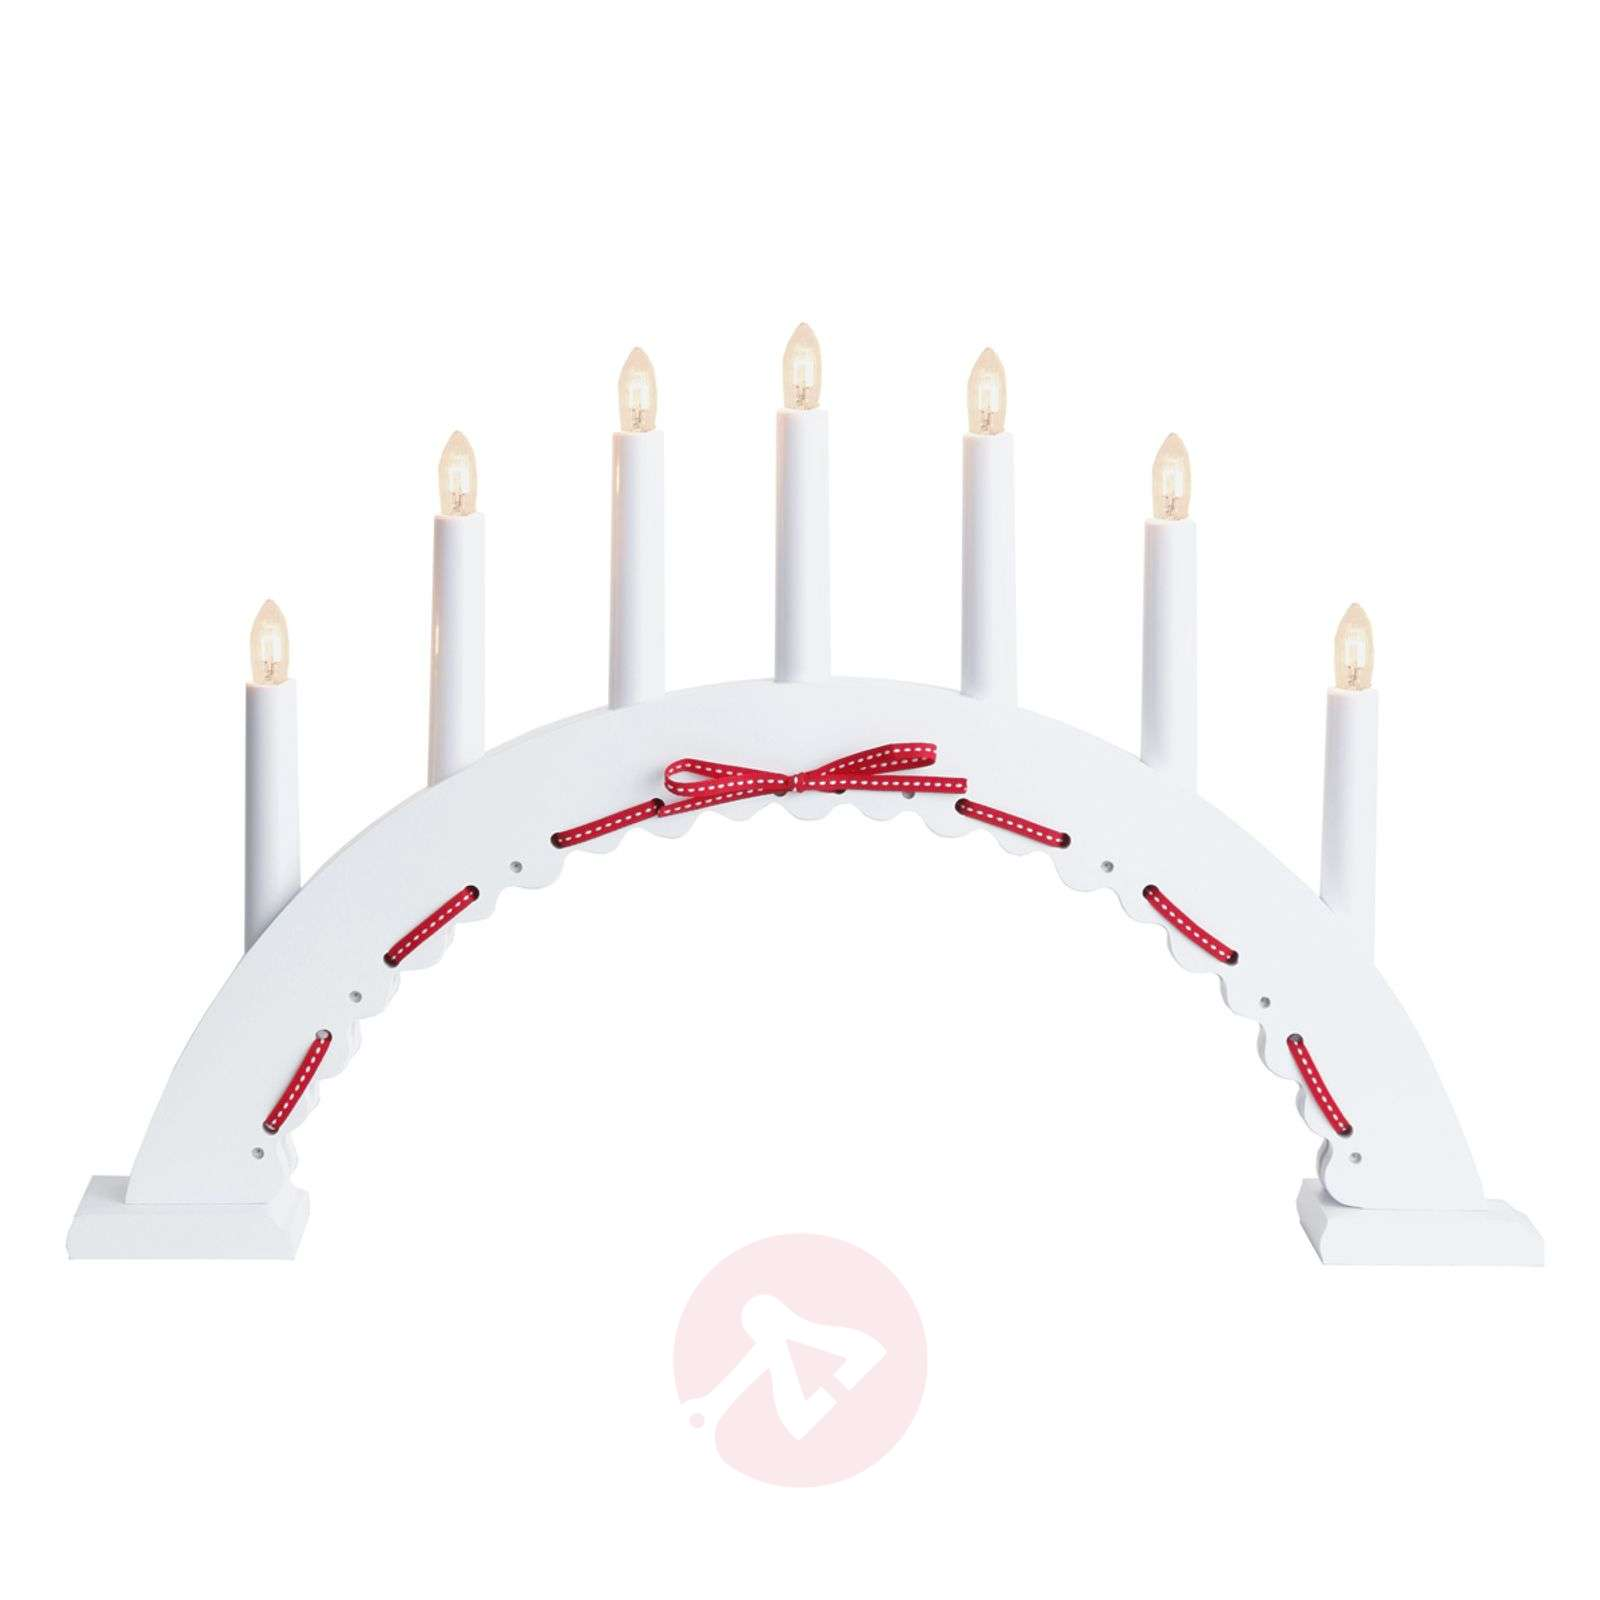 White and red candle arch Vira, 7 lights-1522675-01